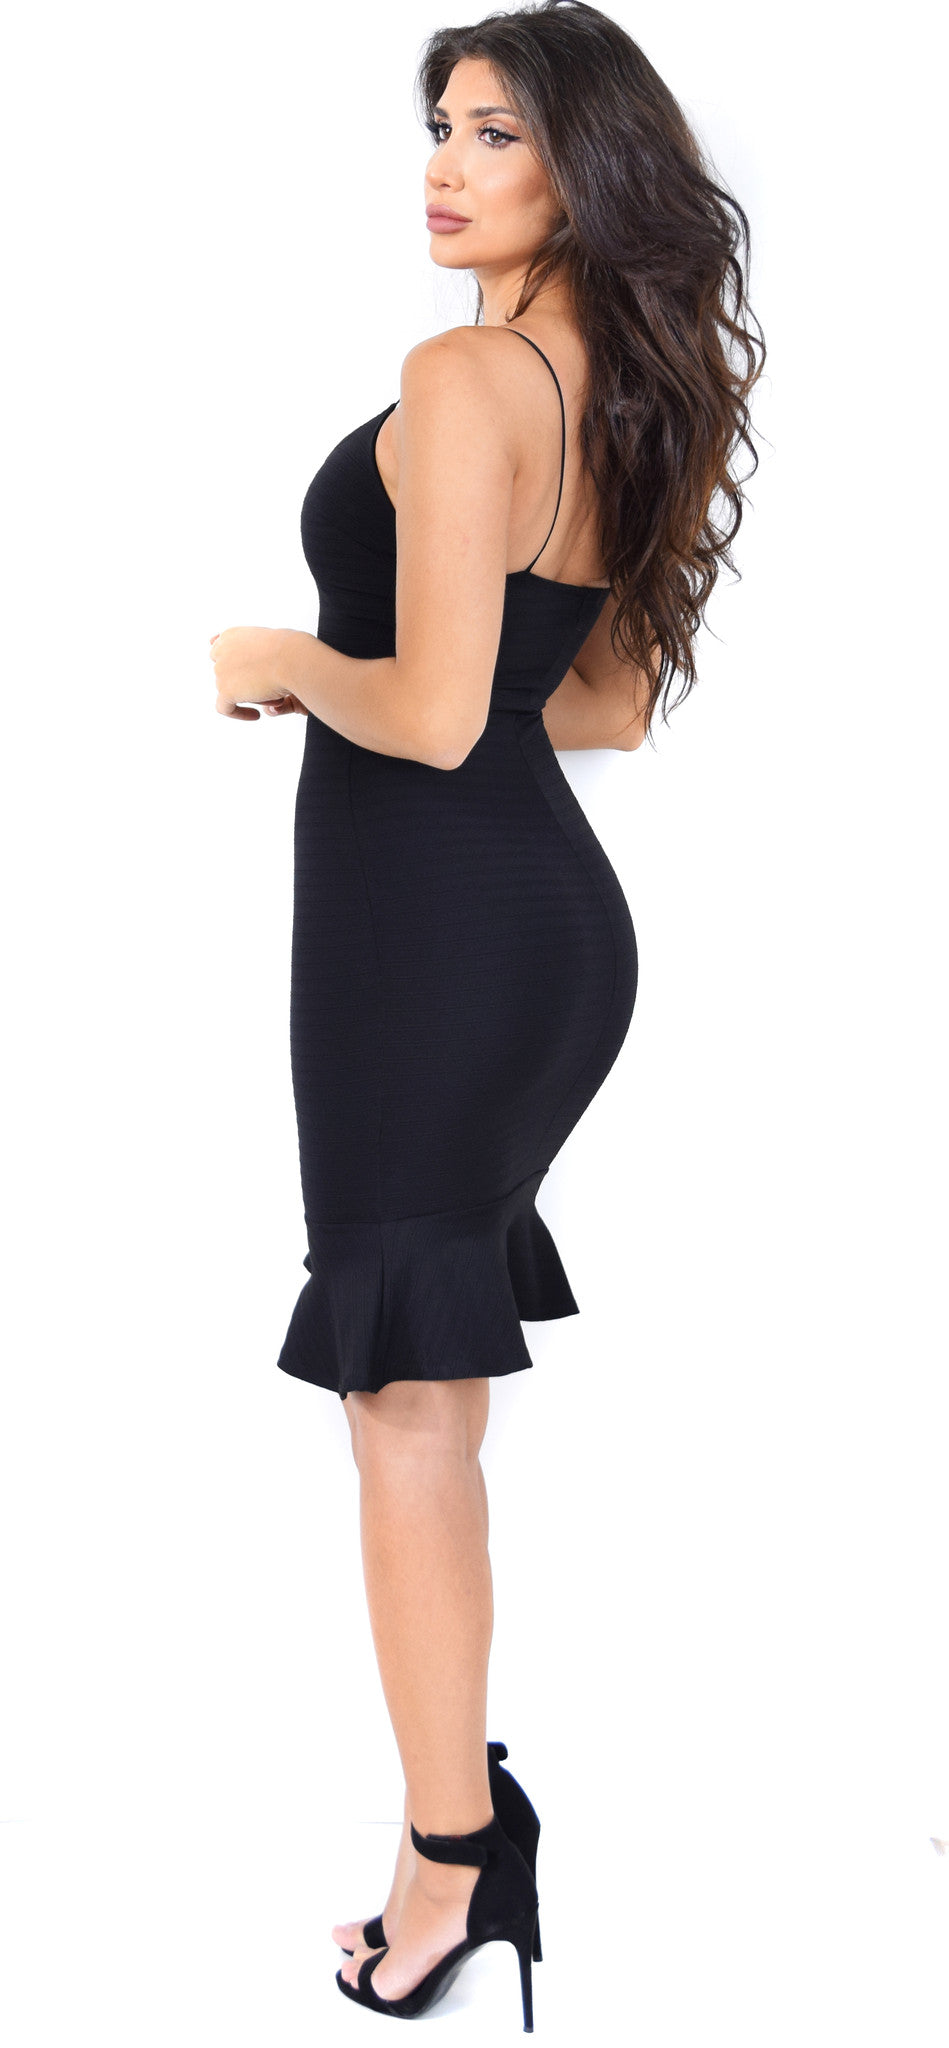 Elara Black Ruffle Bottom Dress - Emprada